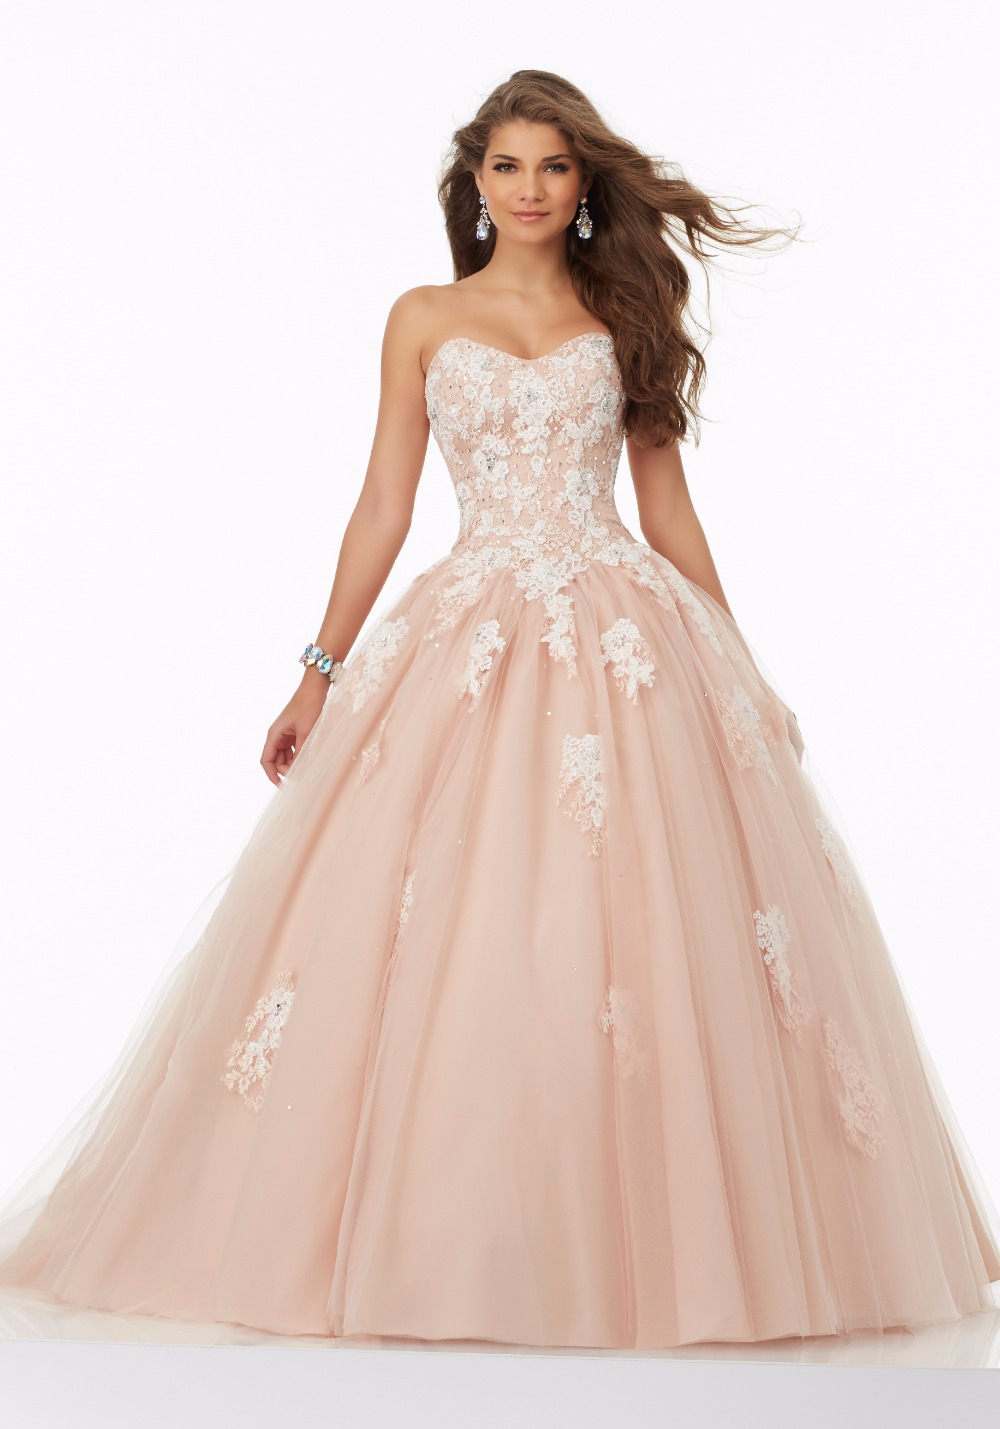 Champagne Black Nude Ball Gown 2017 Long Prom Dresses -9327